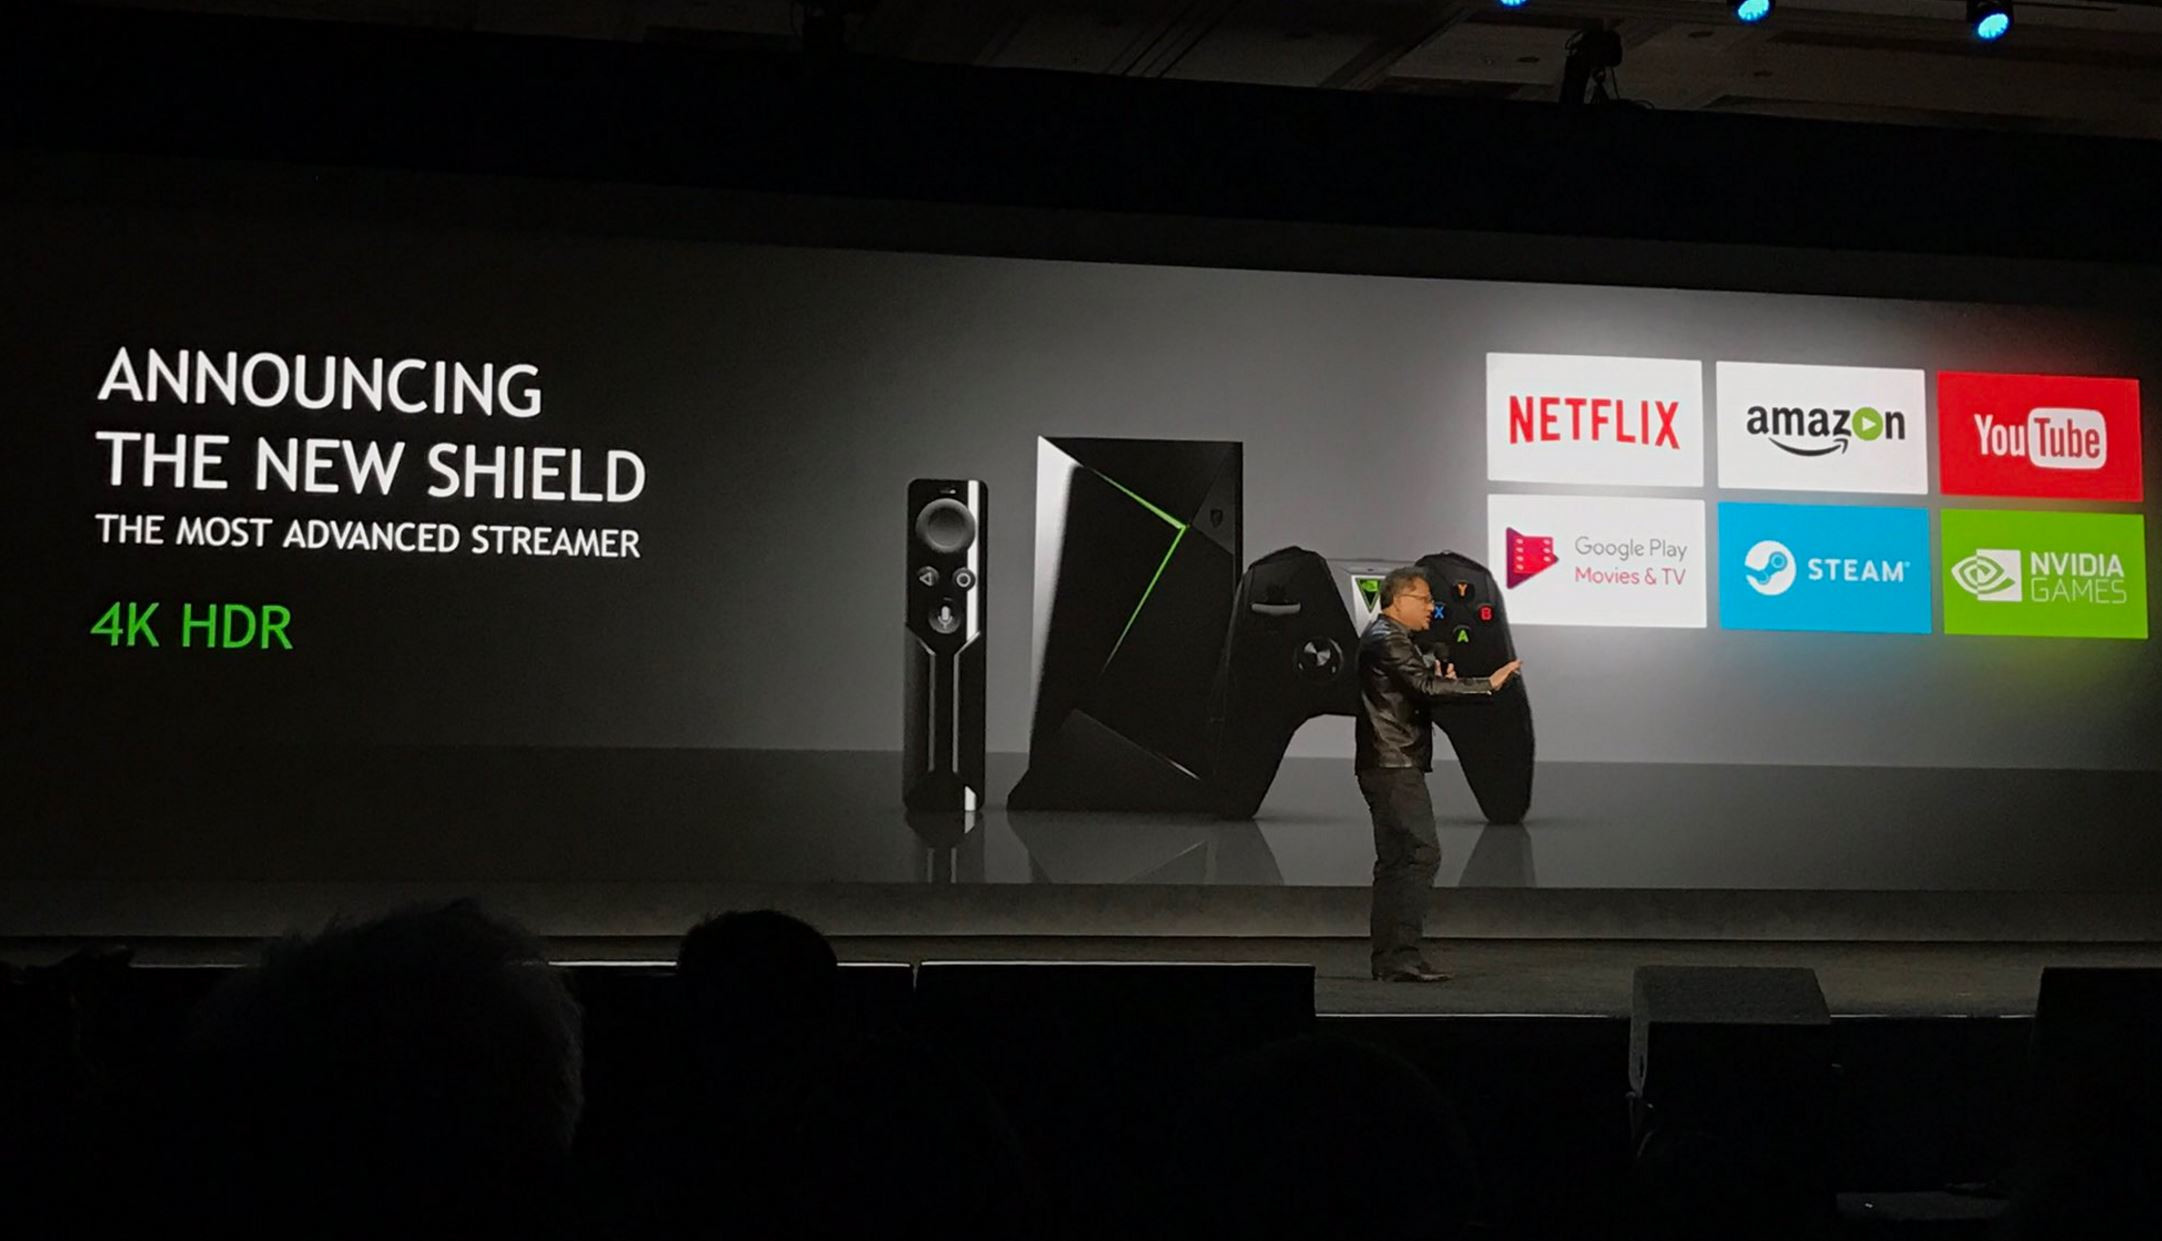 Nvidia announces their new 4K HDR Shield for $199